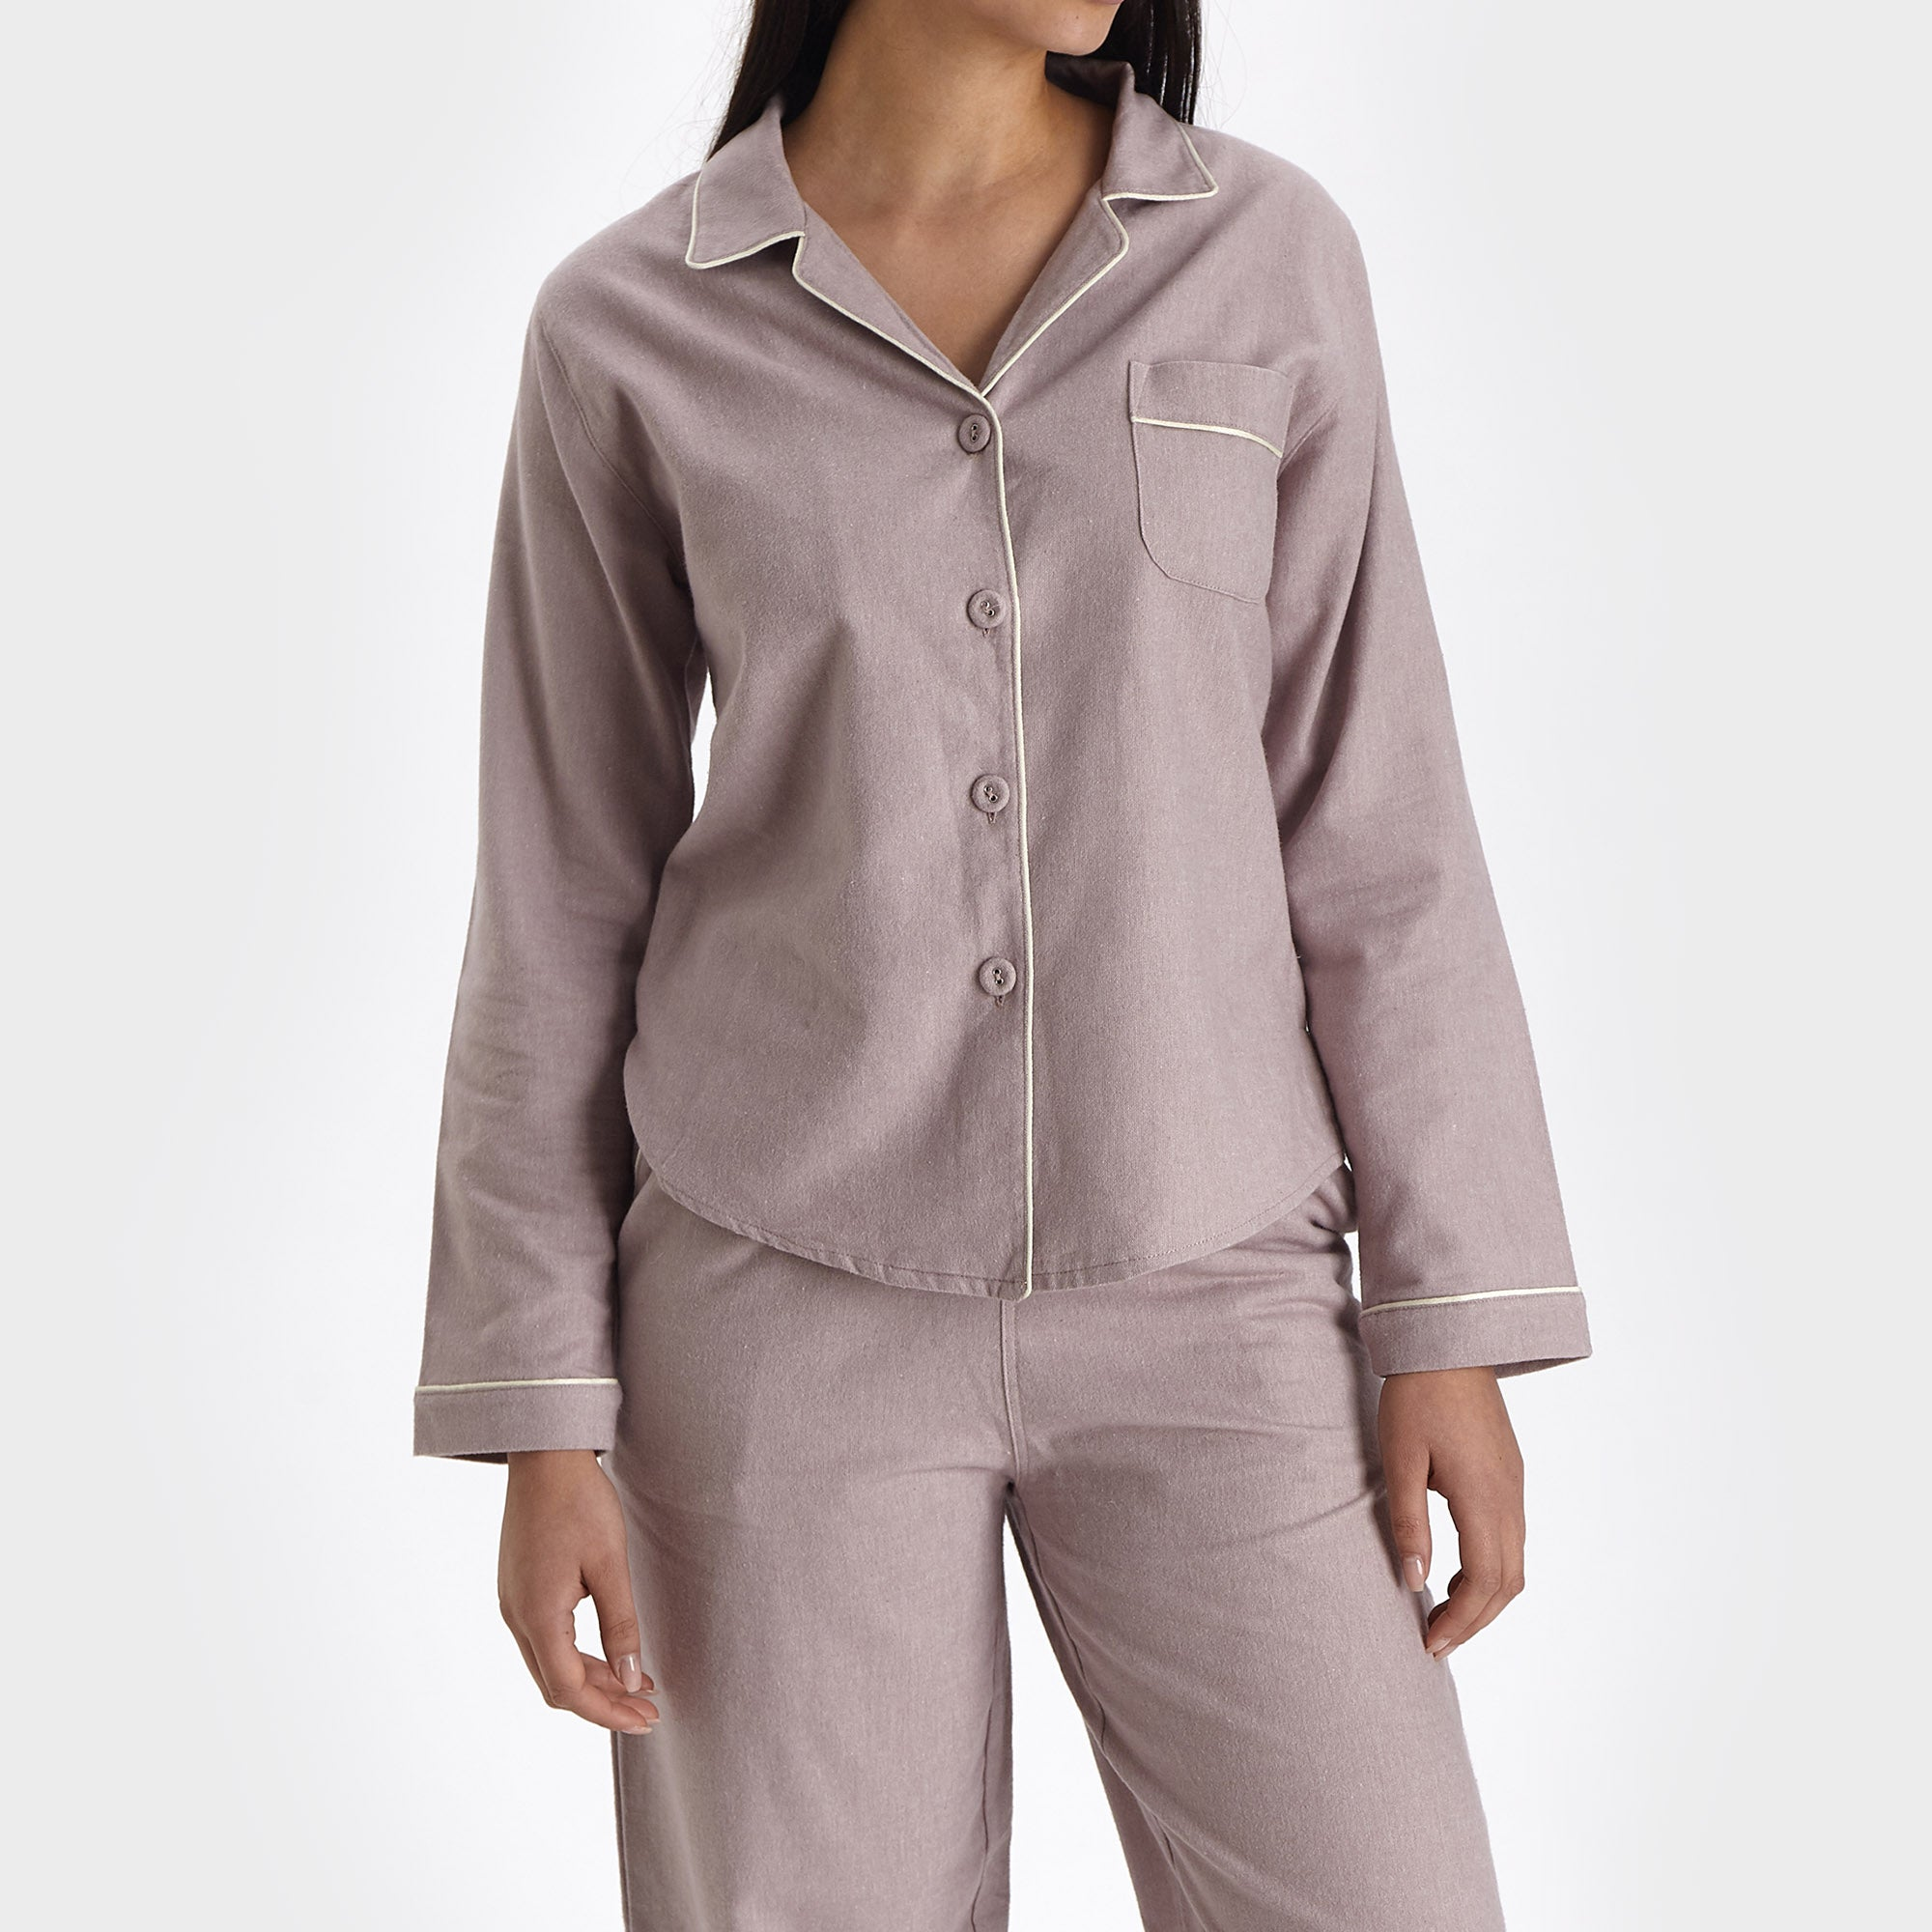 Arove pyjama, light mauve & natural white, 100% organic cotton